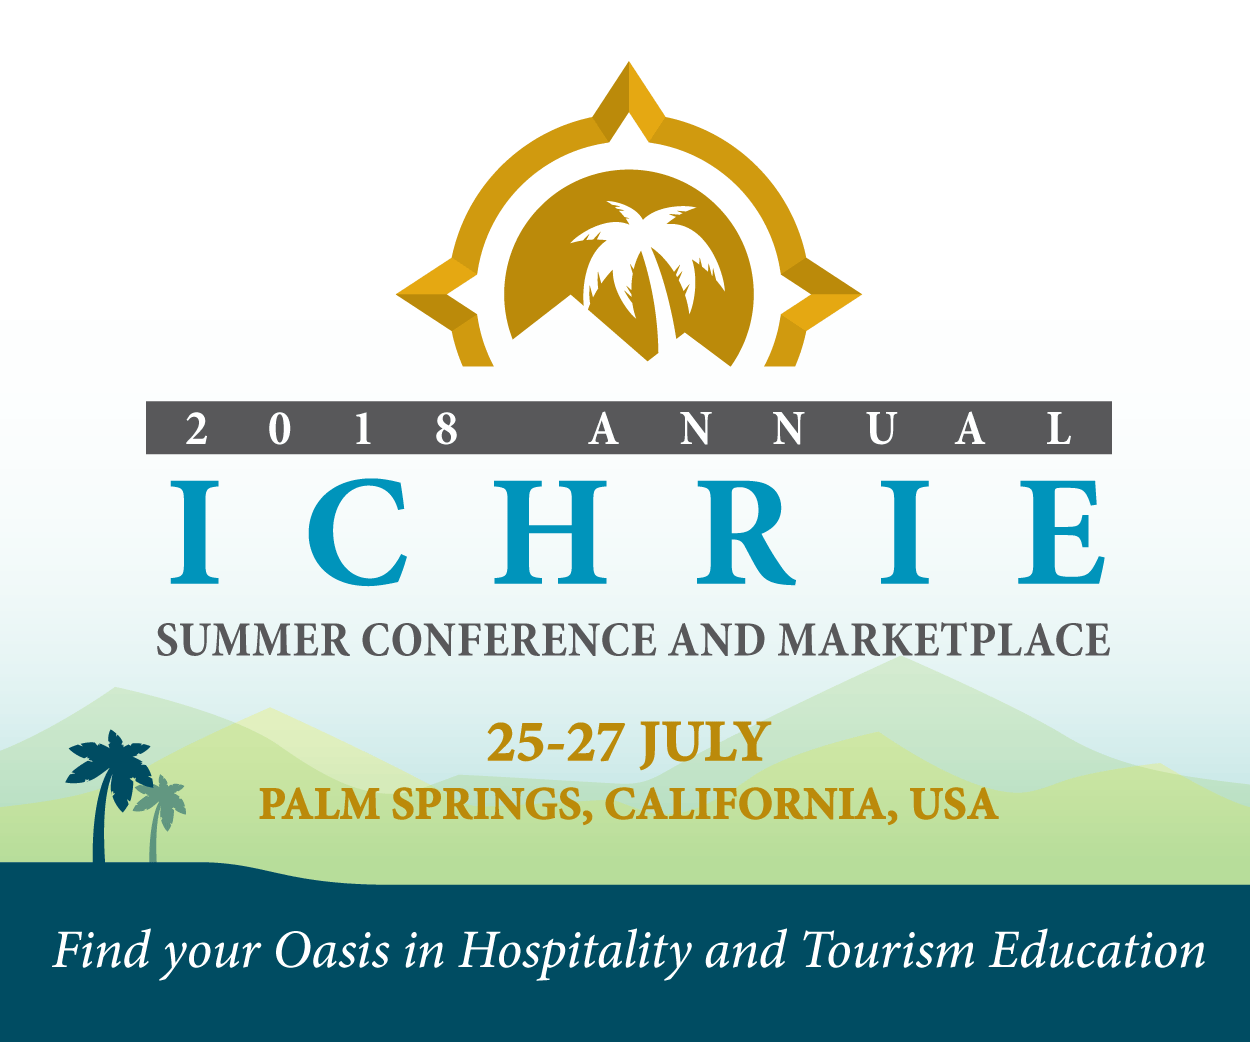 2018 International CHRIE Conference and Marketplace